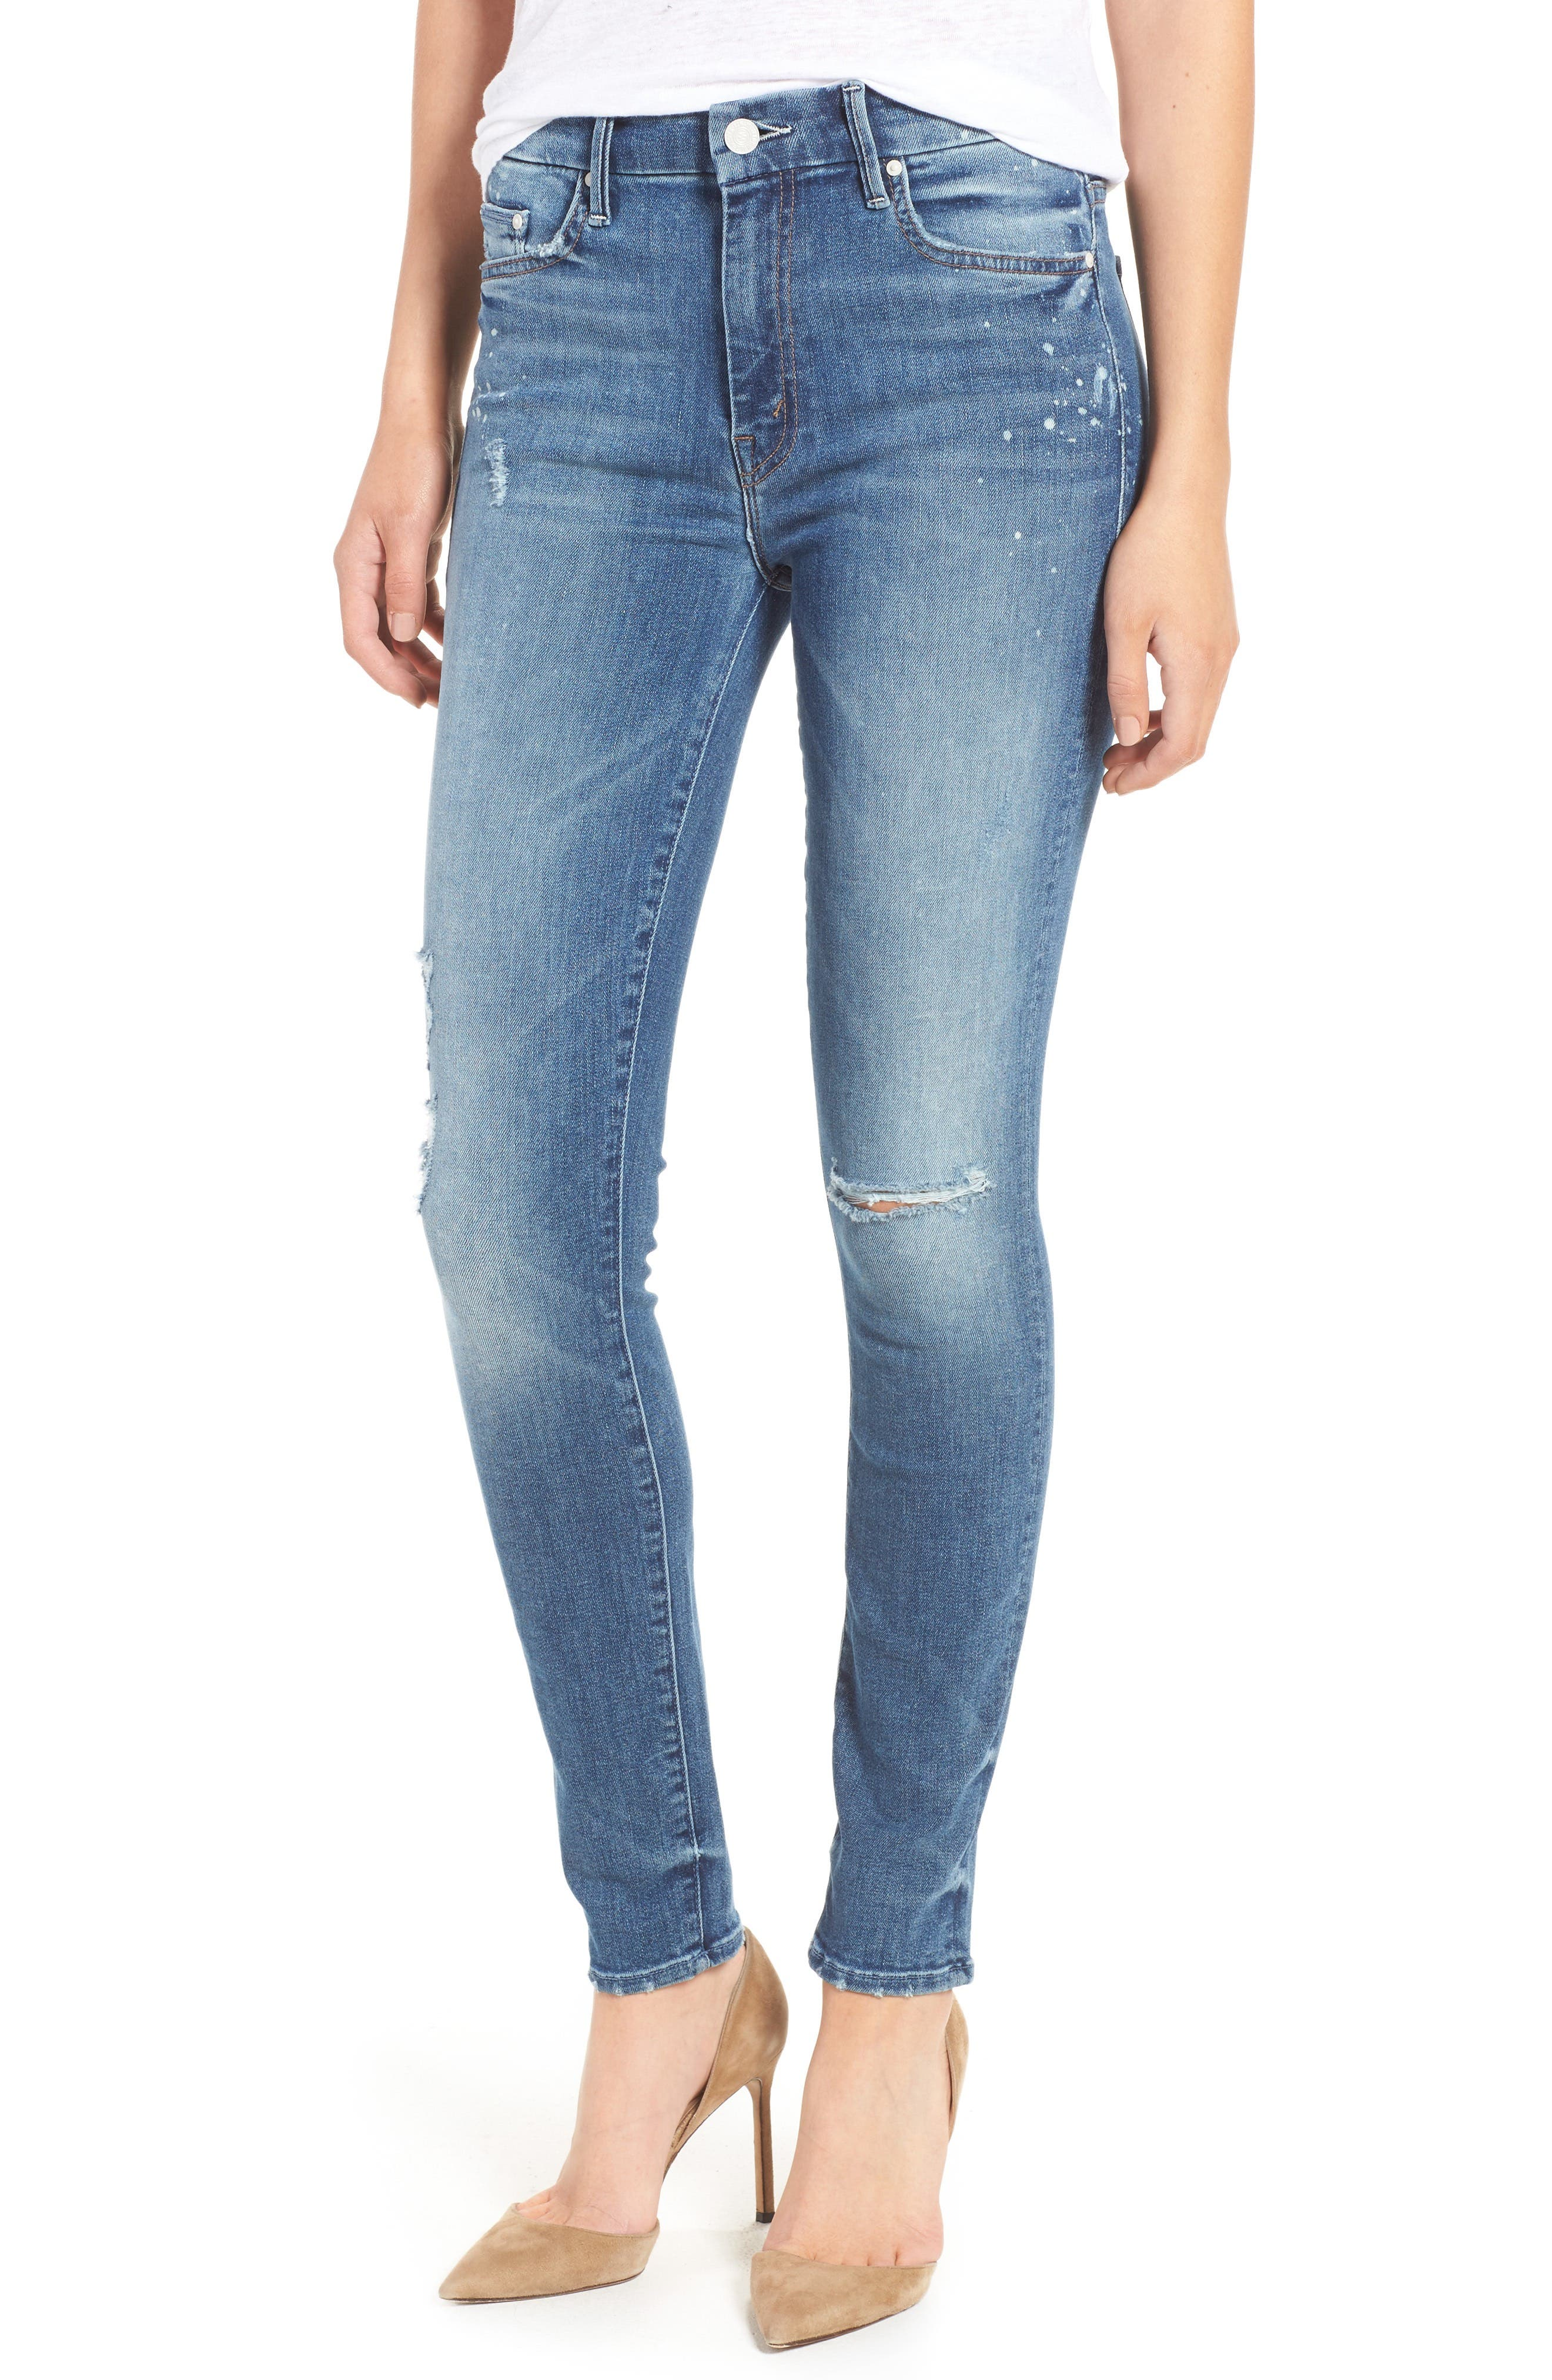 Alternate Image 1 Selected - MOTHER The Looker High Waist Skinny Jeans (Loud Is How I Love You)